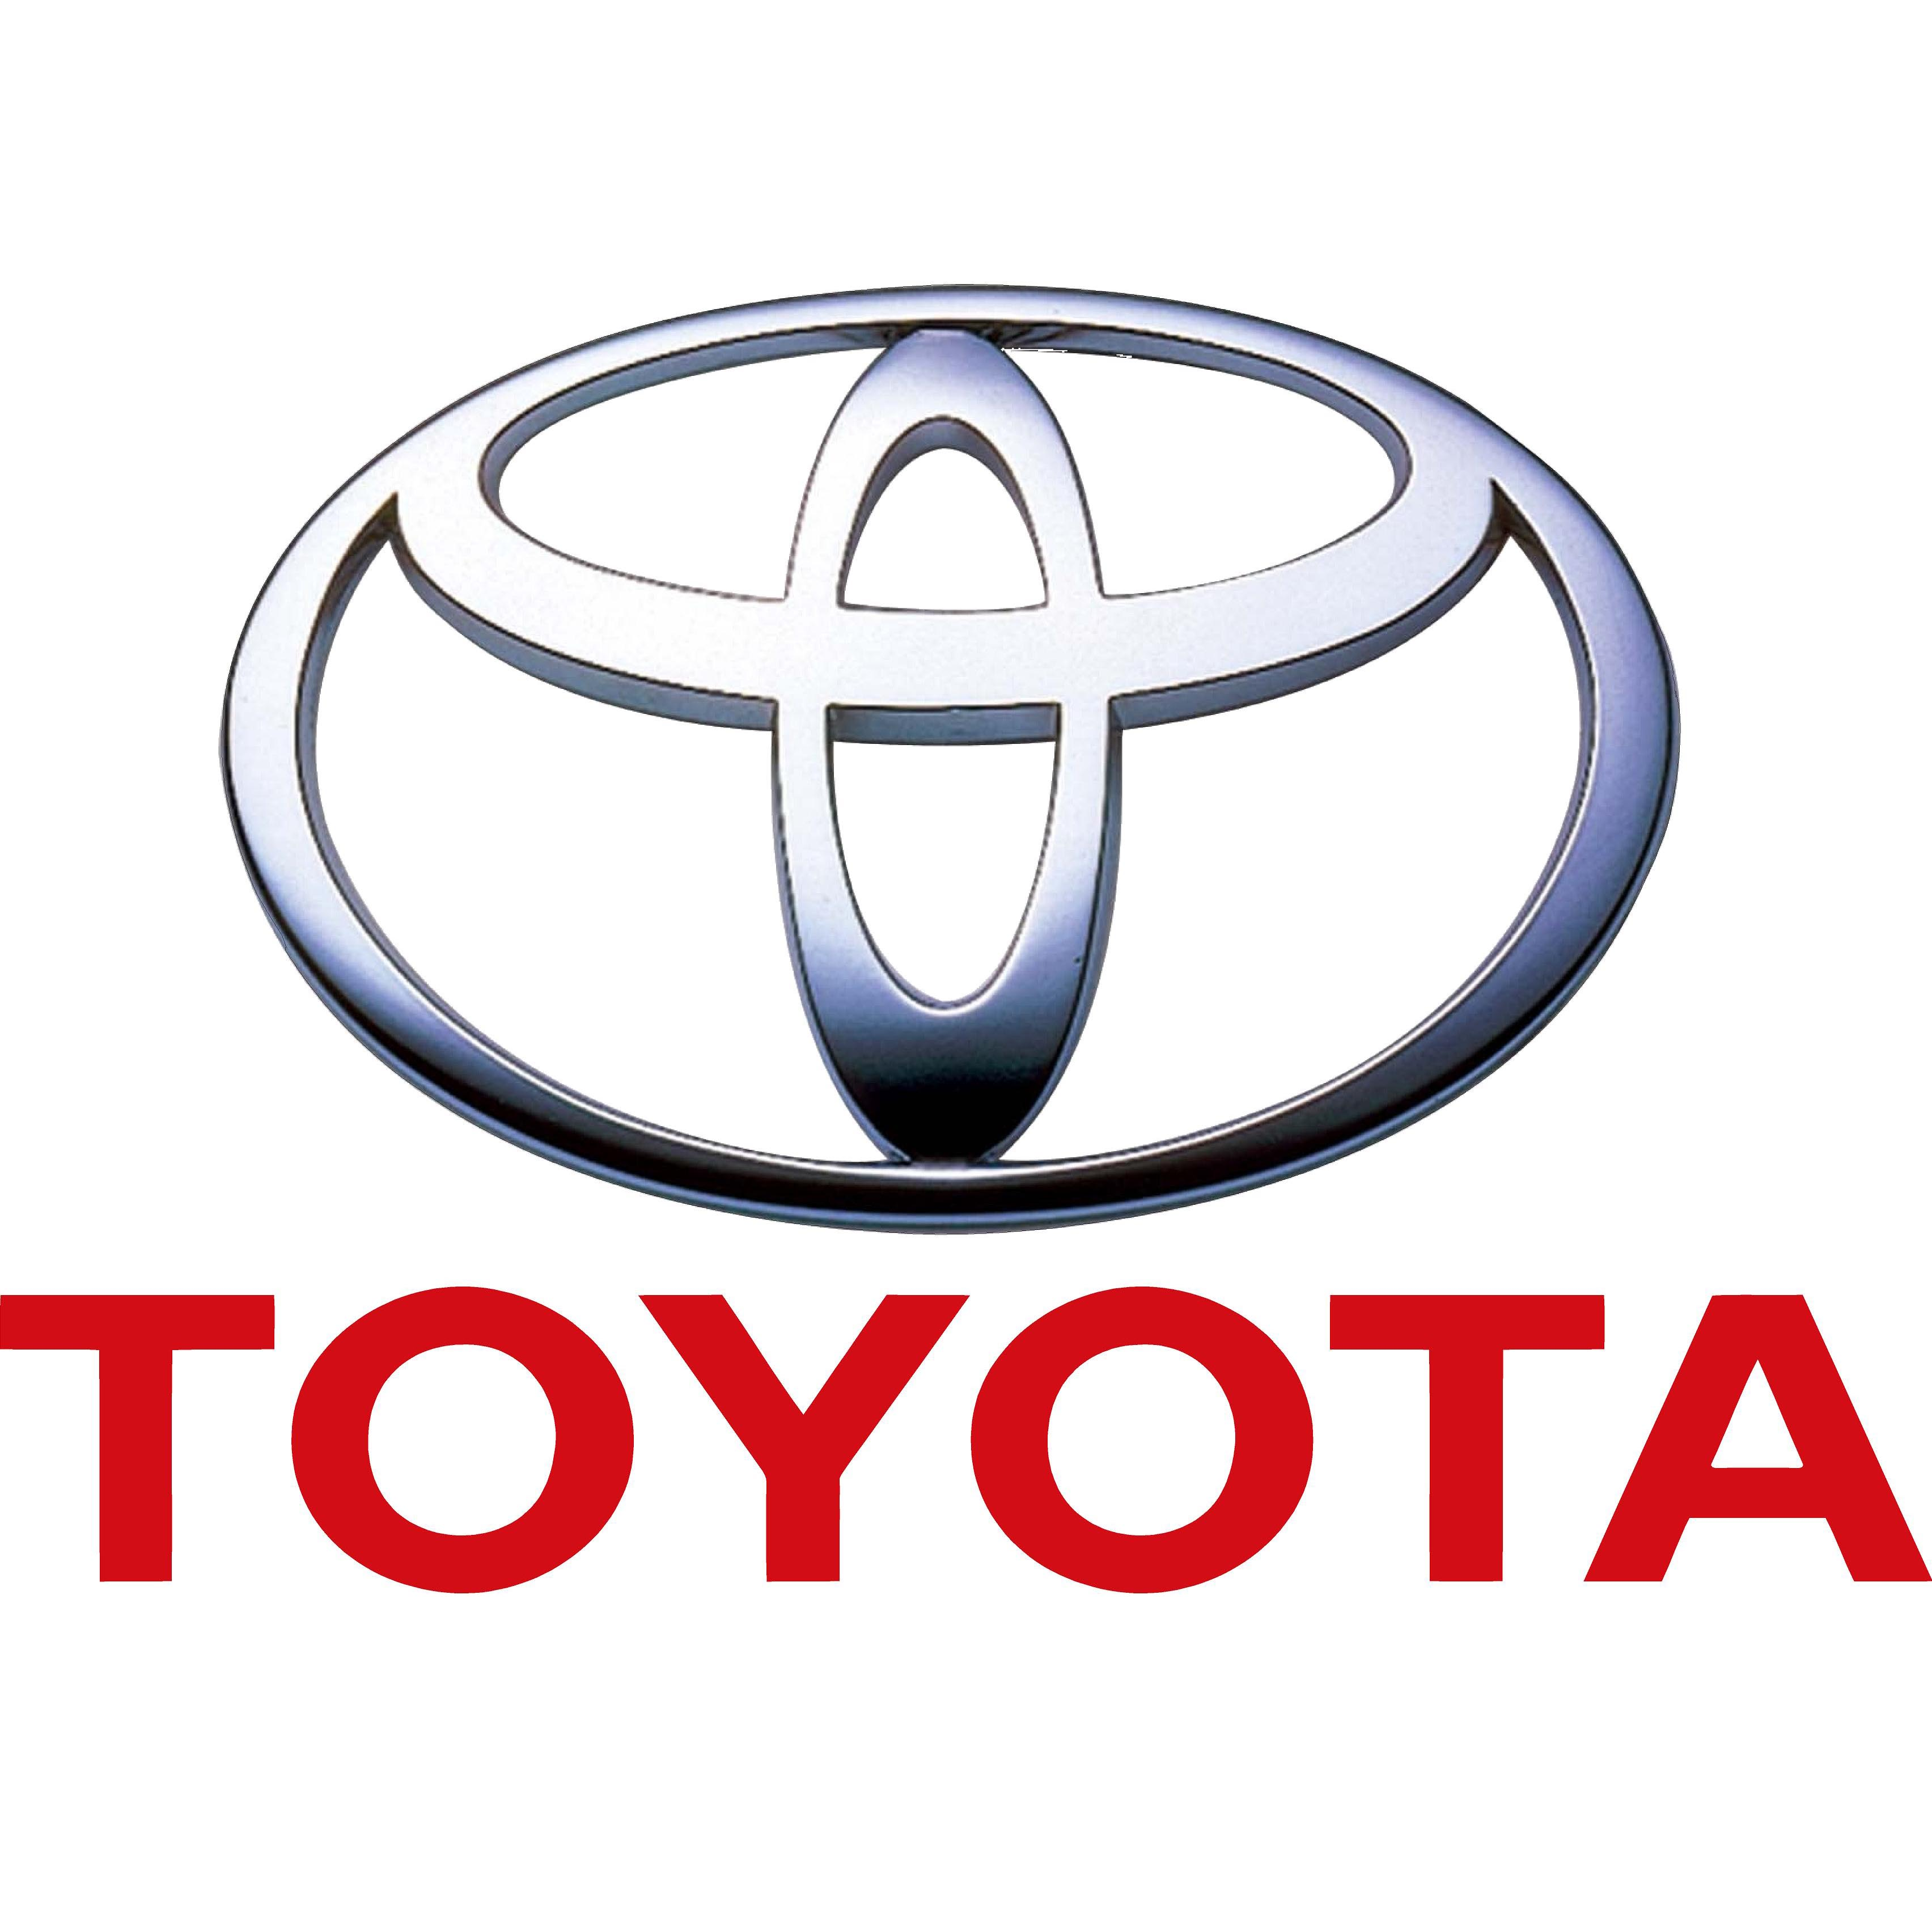 Toyota Logo, Toyota Car Symbol Meaning and History - Logo Toyota Flat PNG - Toyota HD PNG